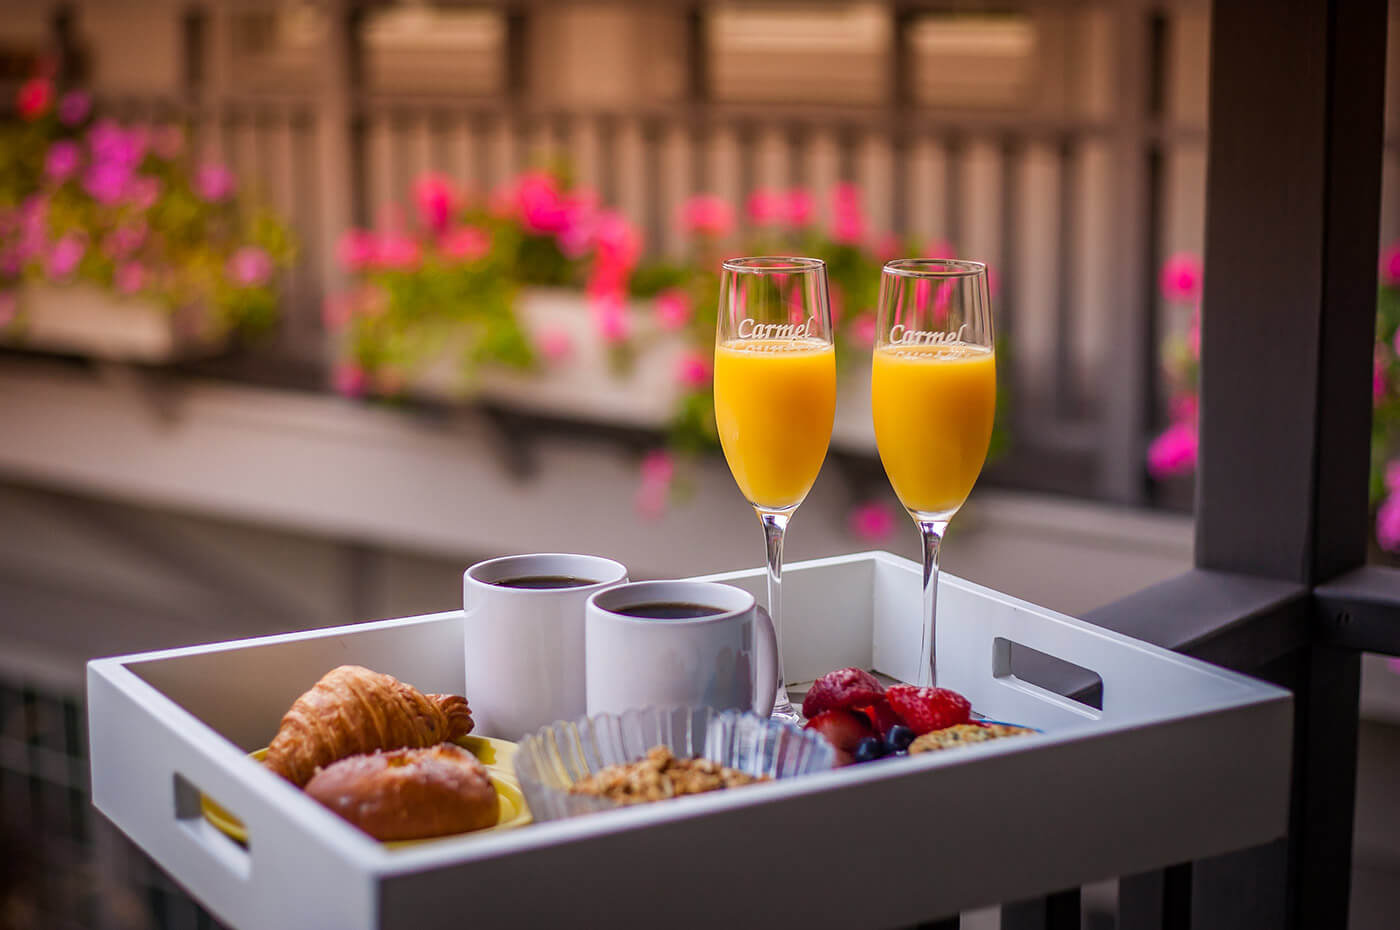 breakfast tray at our Carmel boutique hotel